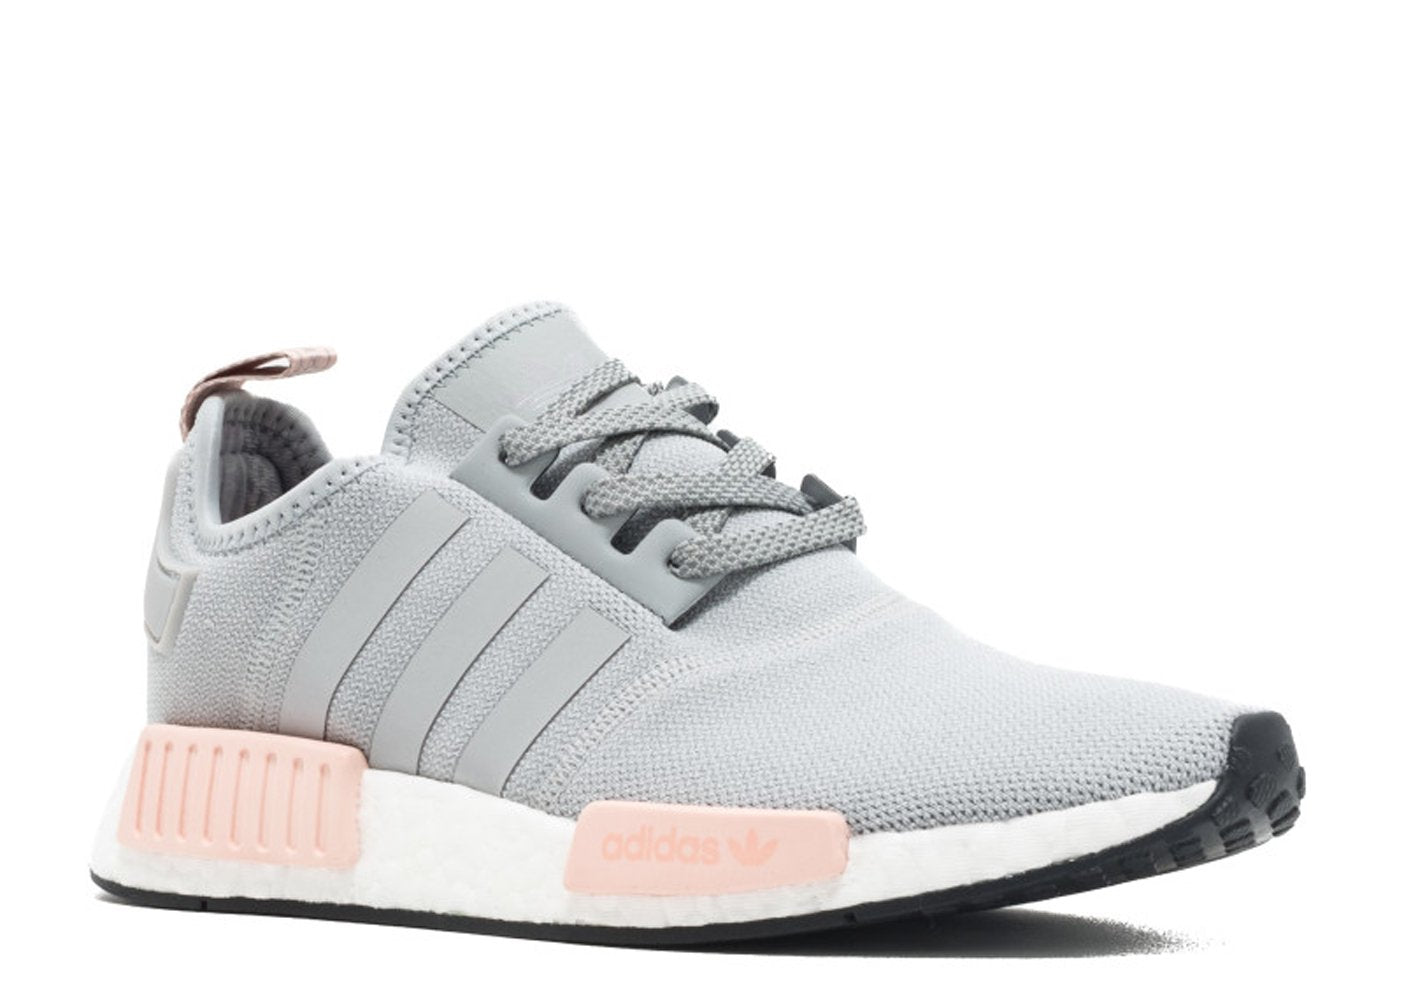 be877203b2b2 KEEVIN Adidas NMD r1 raw gray pink women s casual shoes – Keevin store